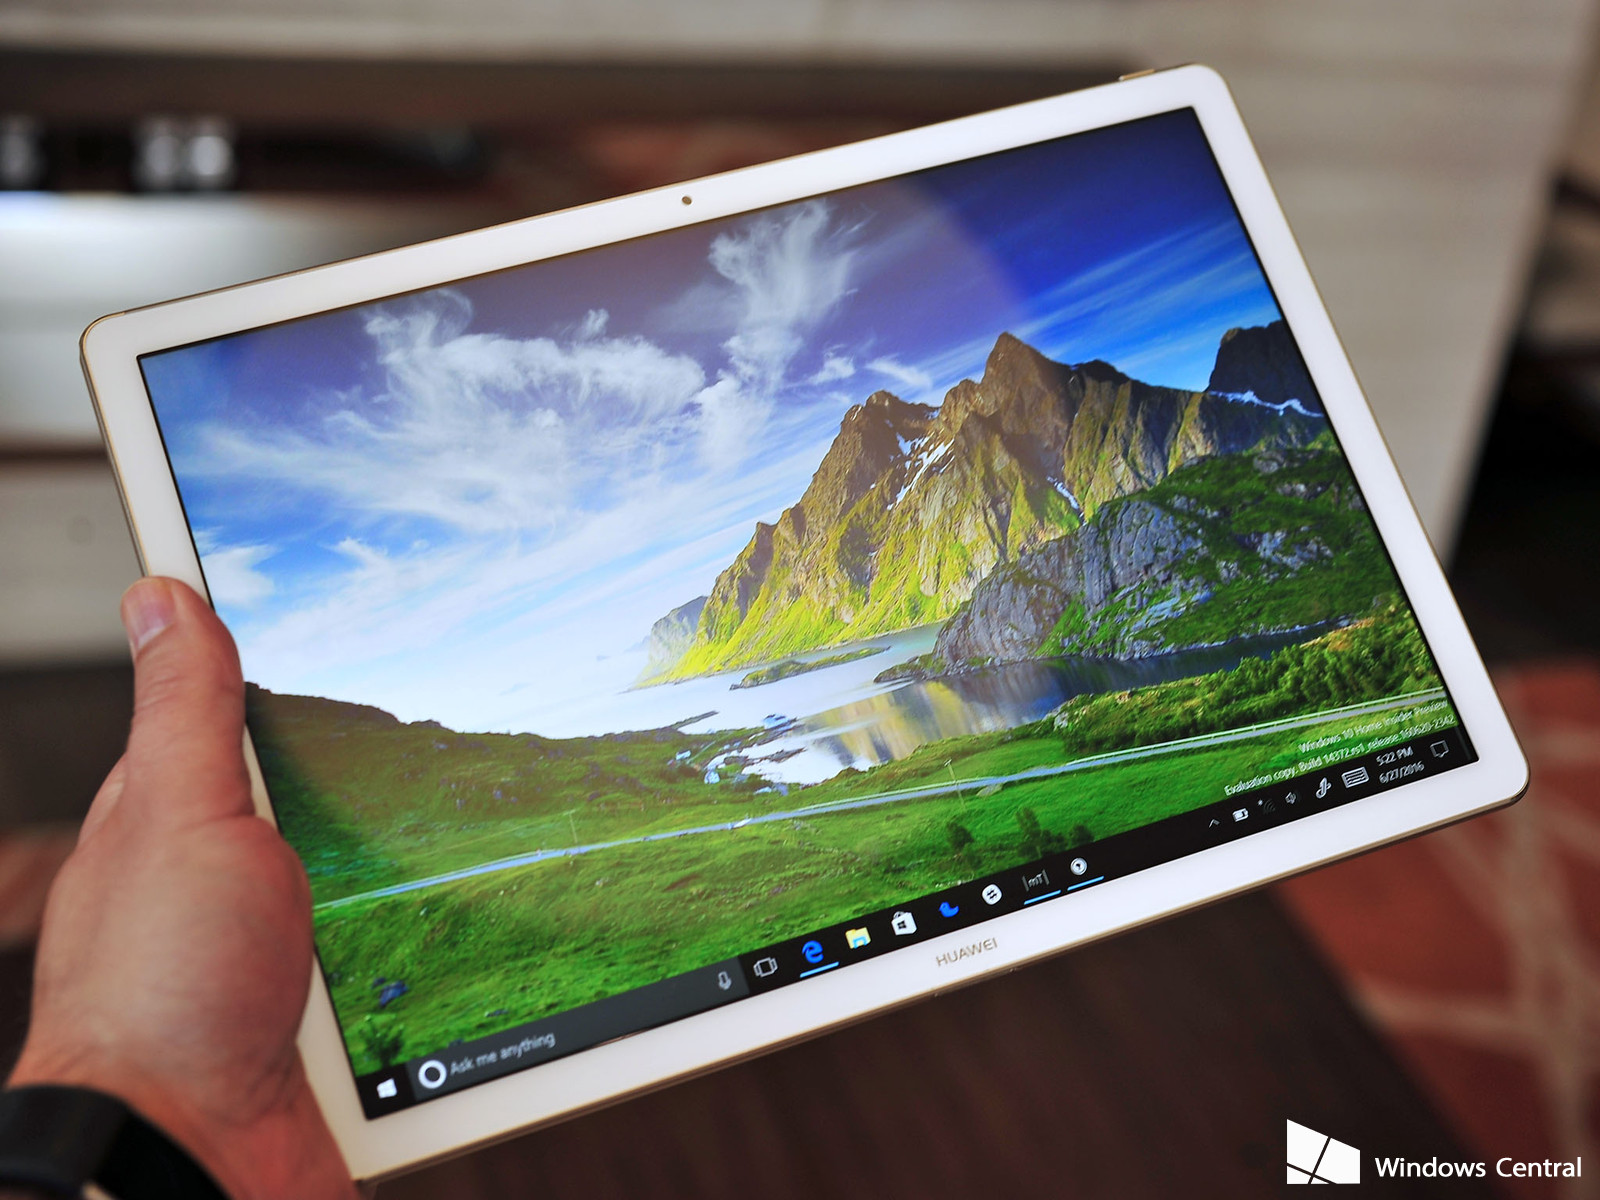 Use this simple app to download the windows 10 anniversary update use this simple app from microsoft to force your windows 10 pc tablet or laptop to grab the latest version of the windows 10 anniversary update baditri Choice Image